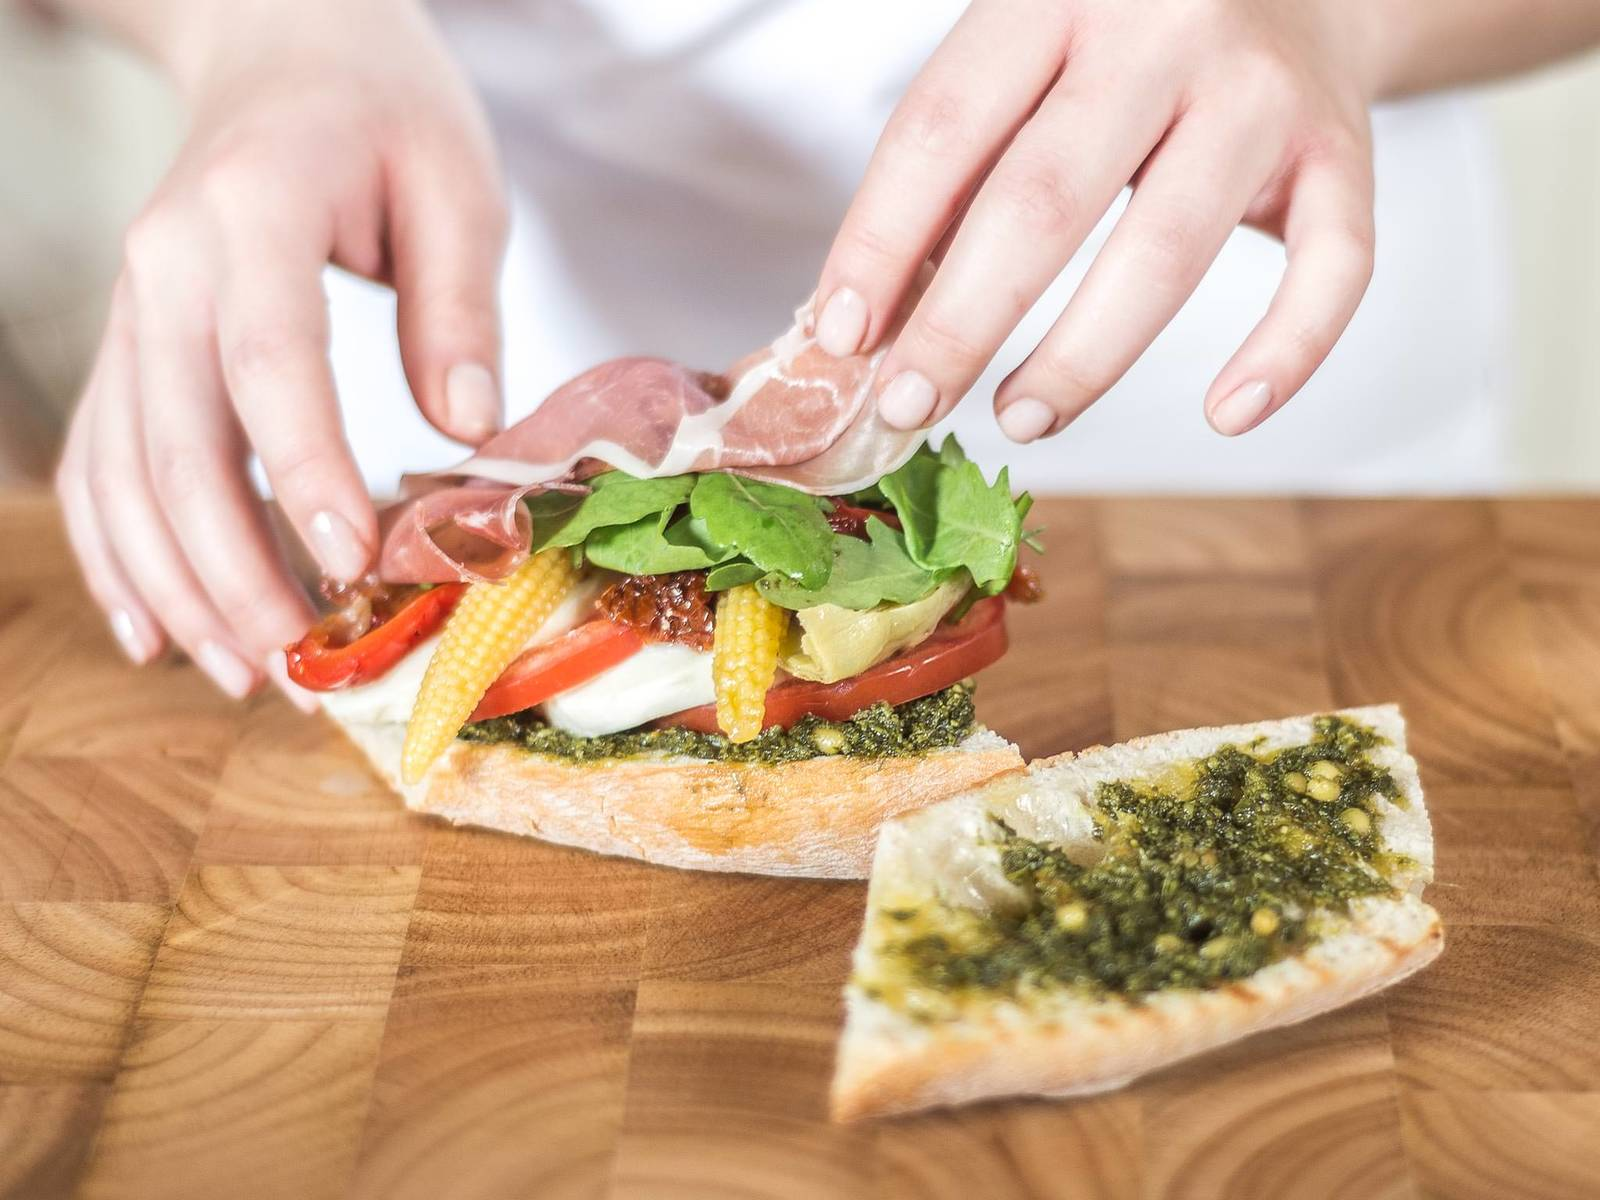 Place the antipasti, prosciutto, and the arugula on the ciabatta. Place another piece of bread on top. Pierce with a wooden skewer to to make the sandwich easier to serve and eat.